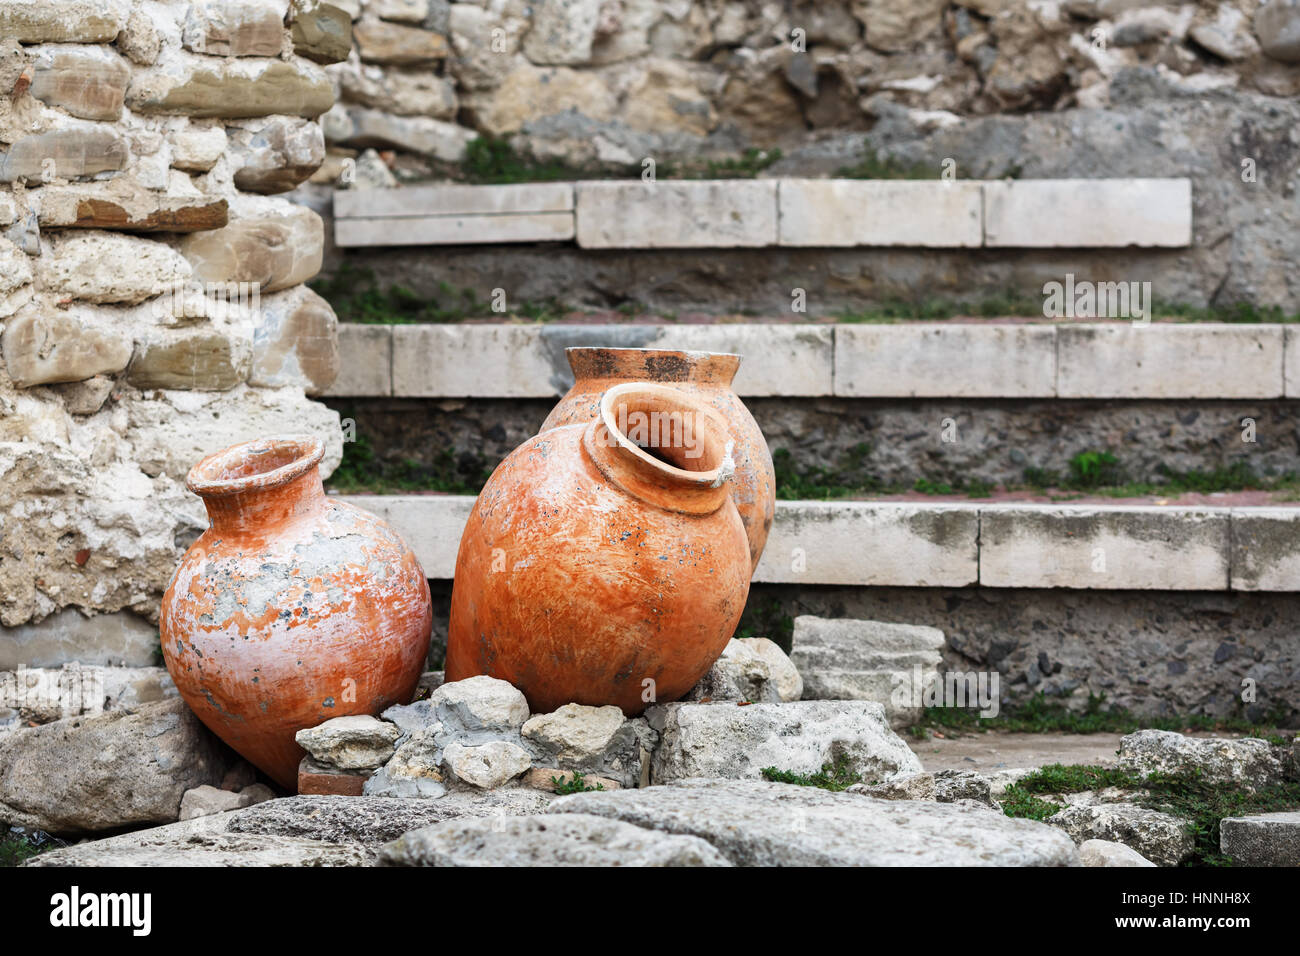 Antique ceramic pots old clay vases outdoors archaeological antique ceramic pots old clay vases outdoors archaeological still life selective focus reviewsmspy